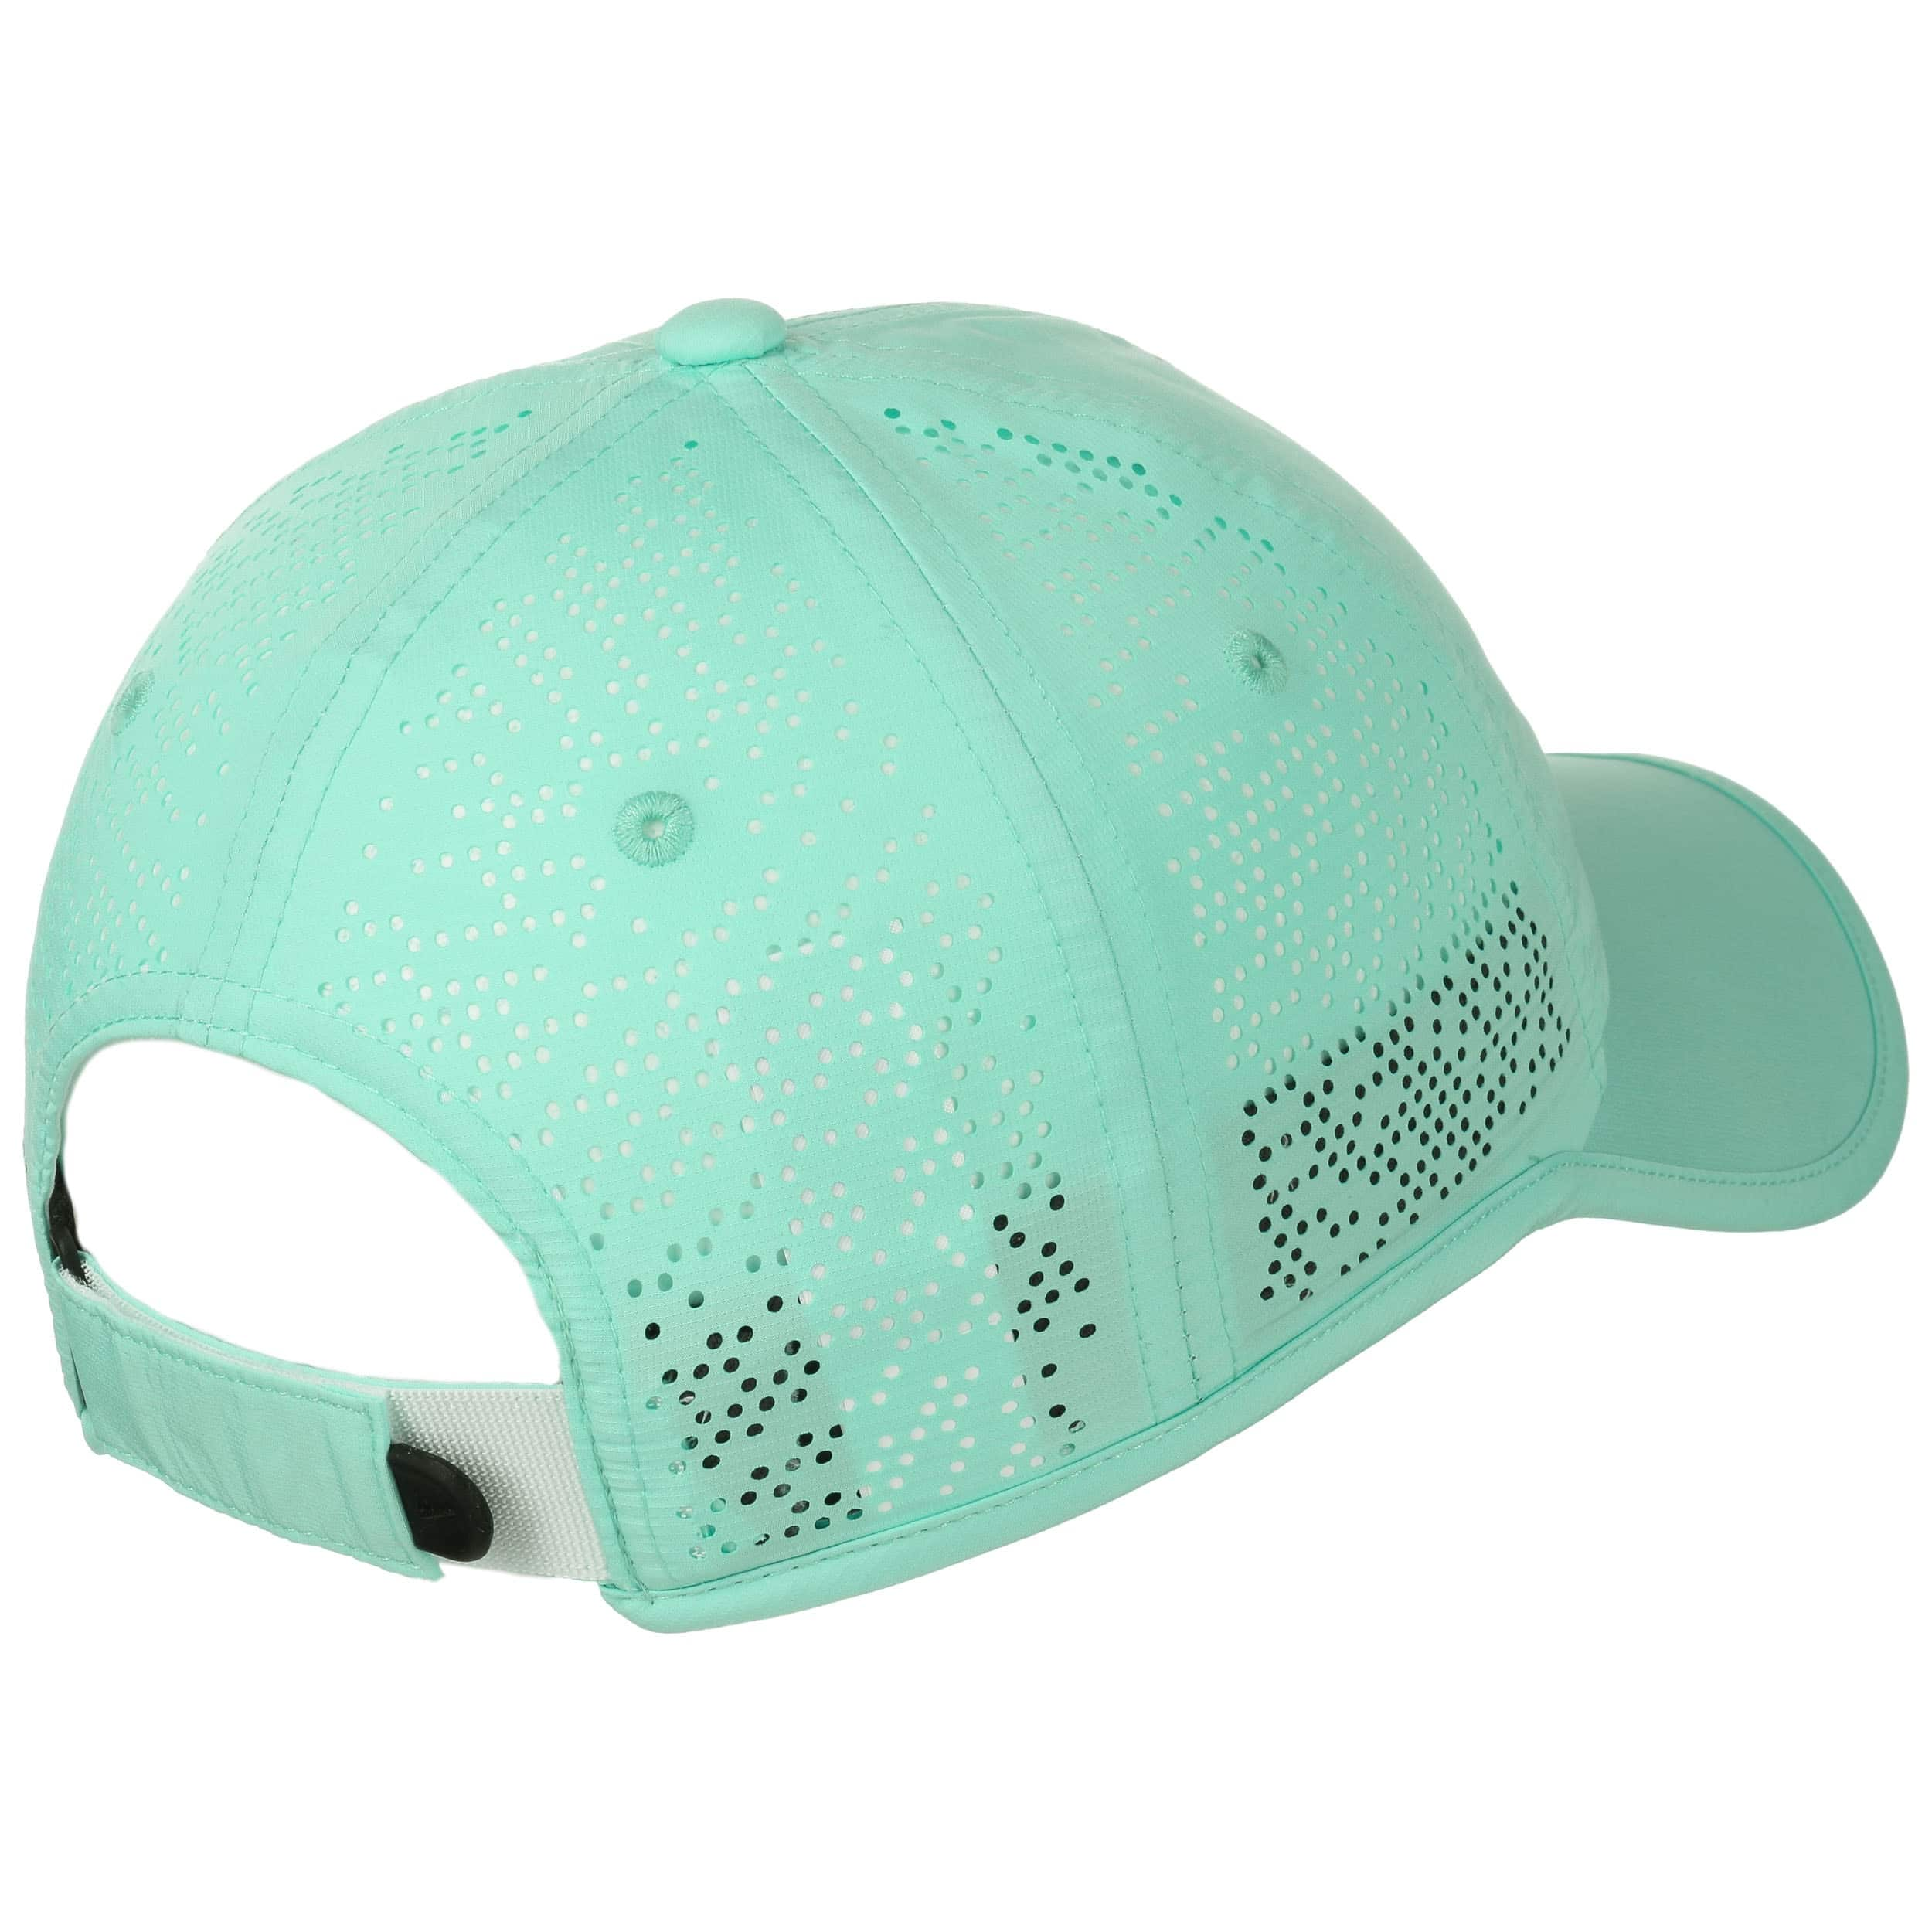 e4cc11d2c8d ... black 2 · Swoosh Perforation Cap by Nike - turquoise 3 ...